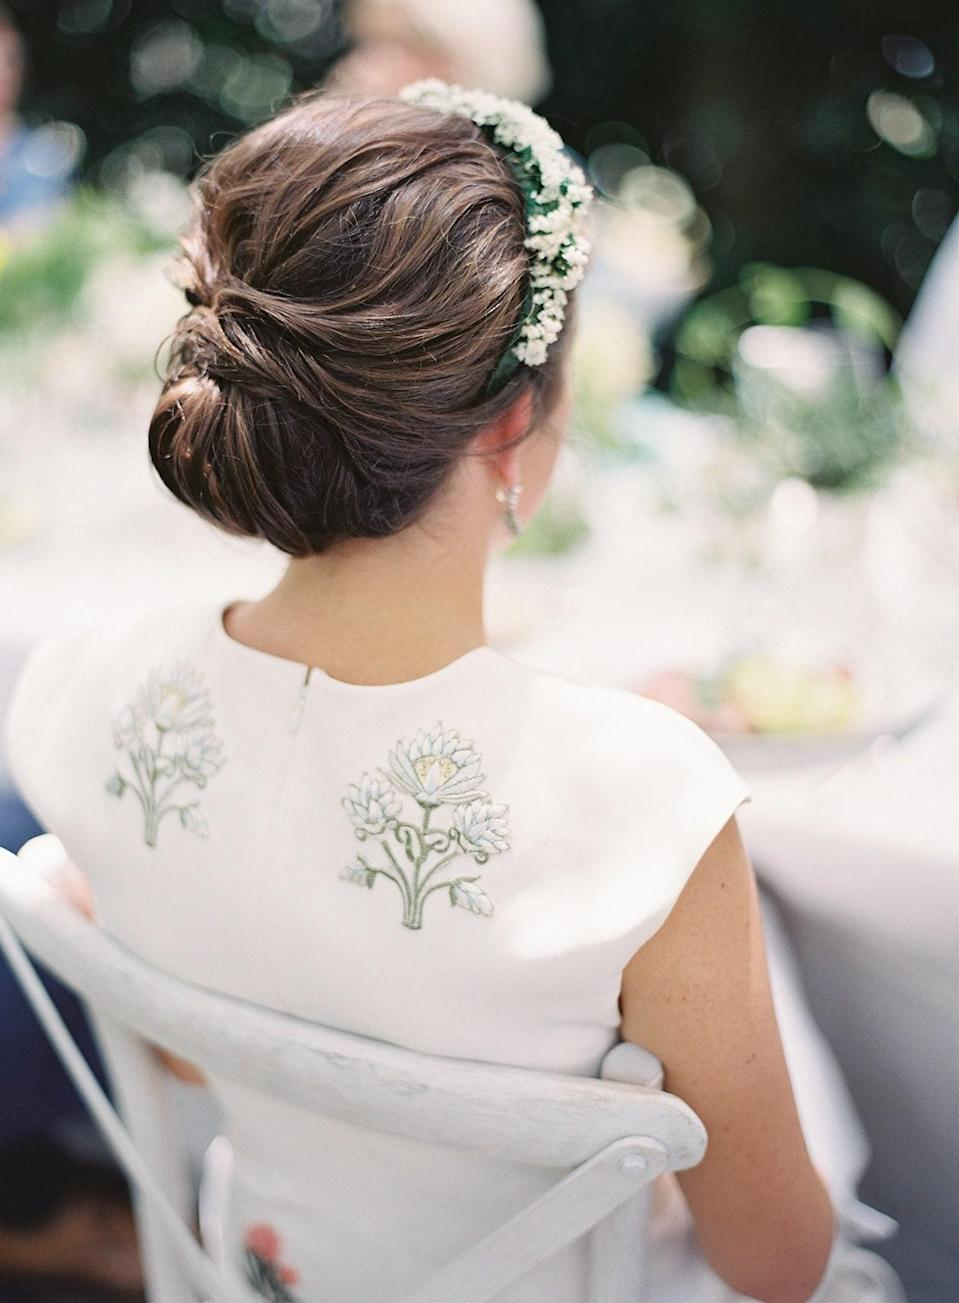 The back view of my updo and embroidered Sachin & Babi dress.